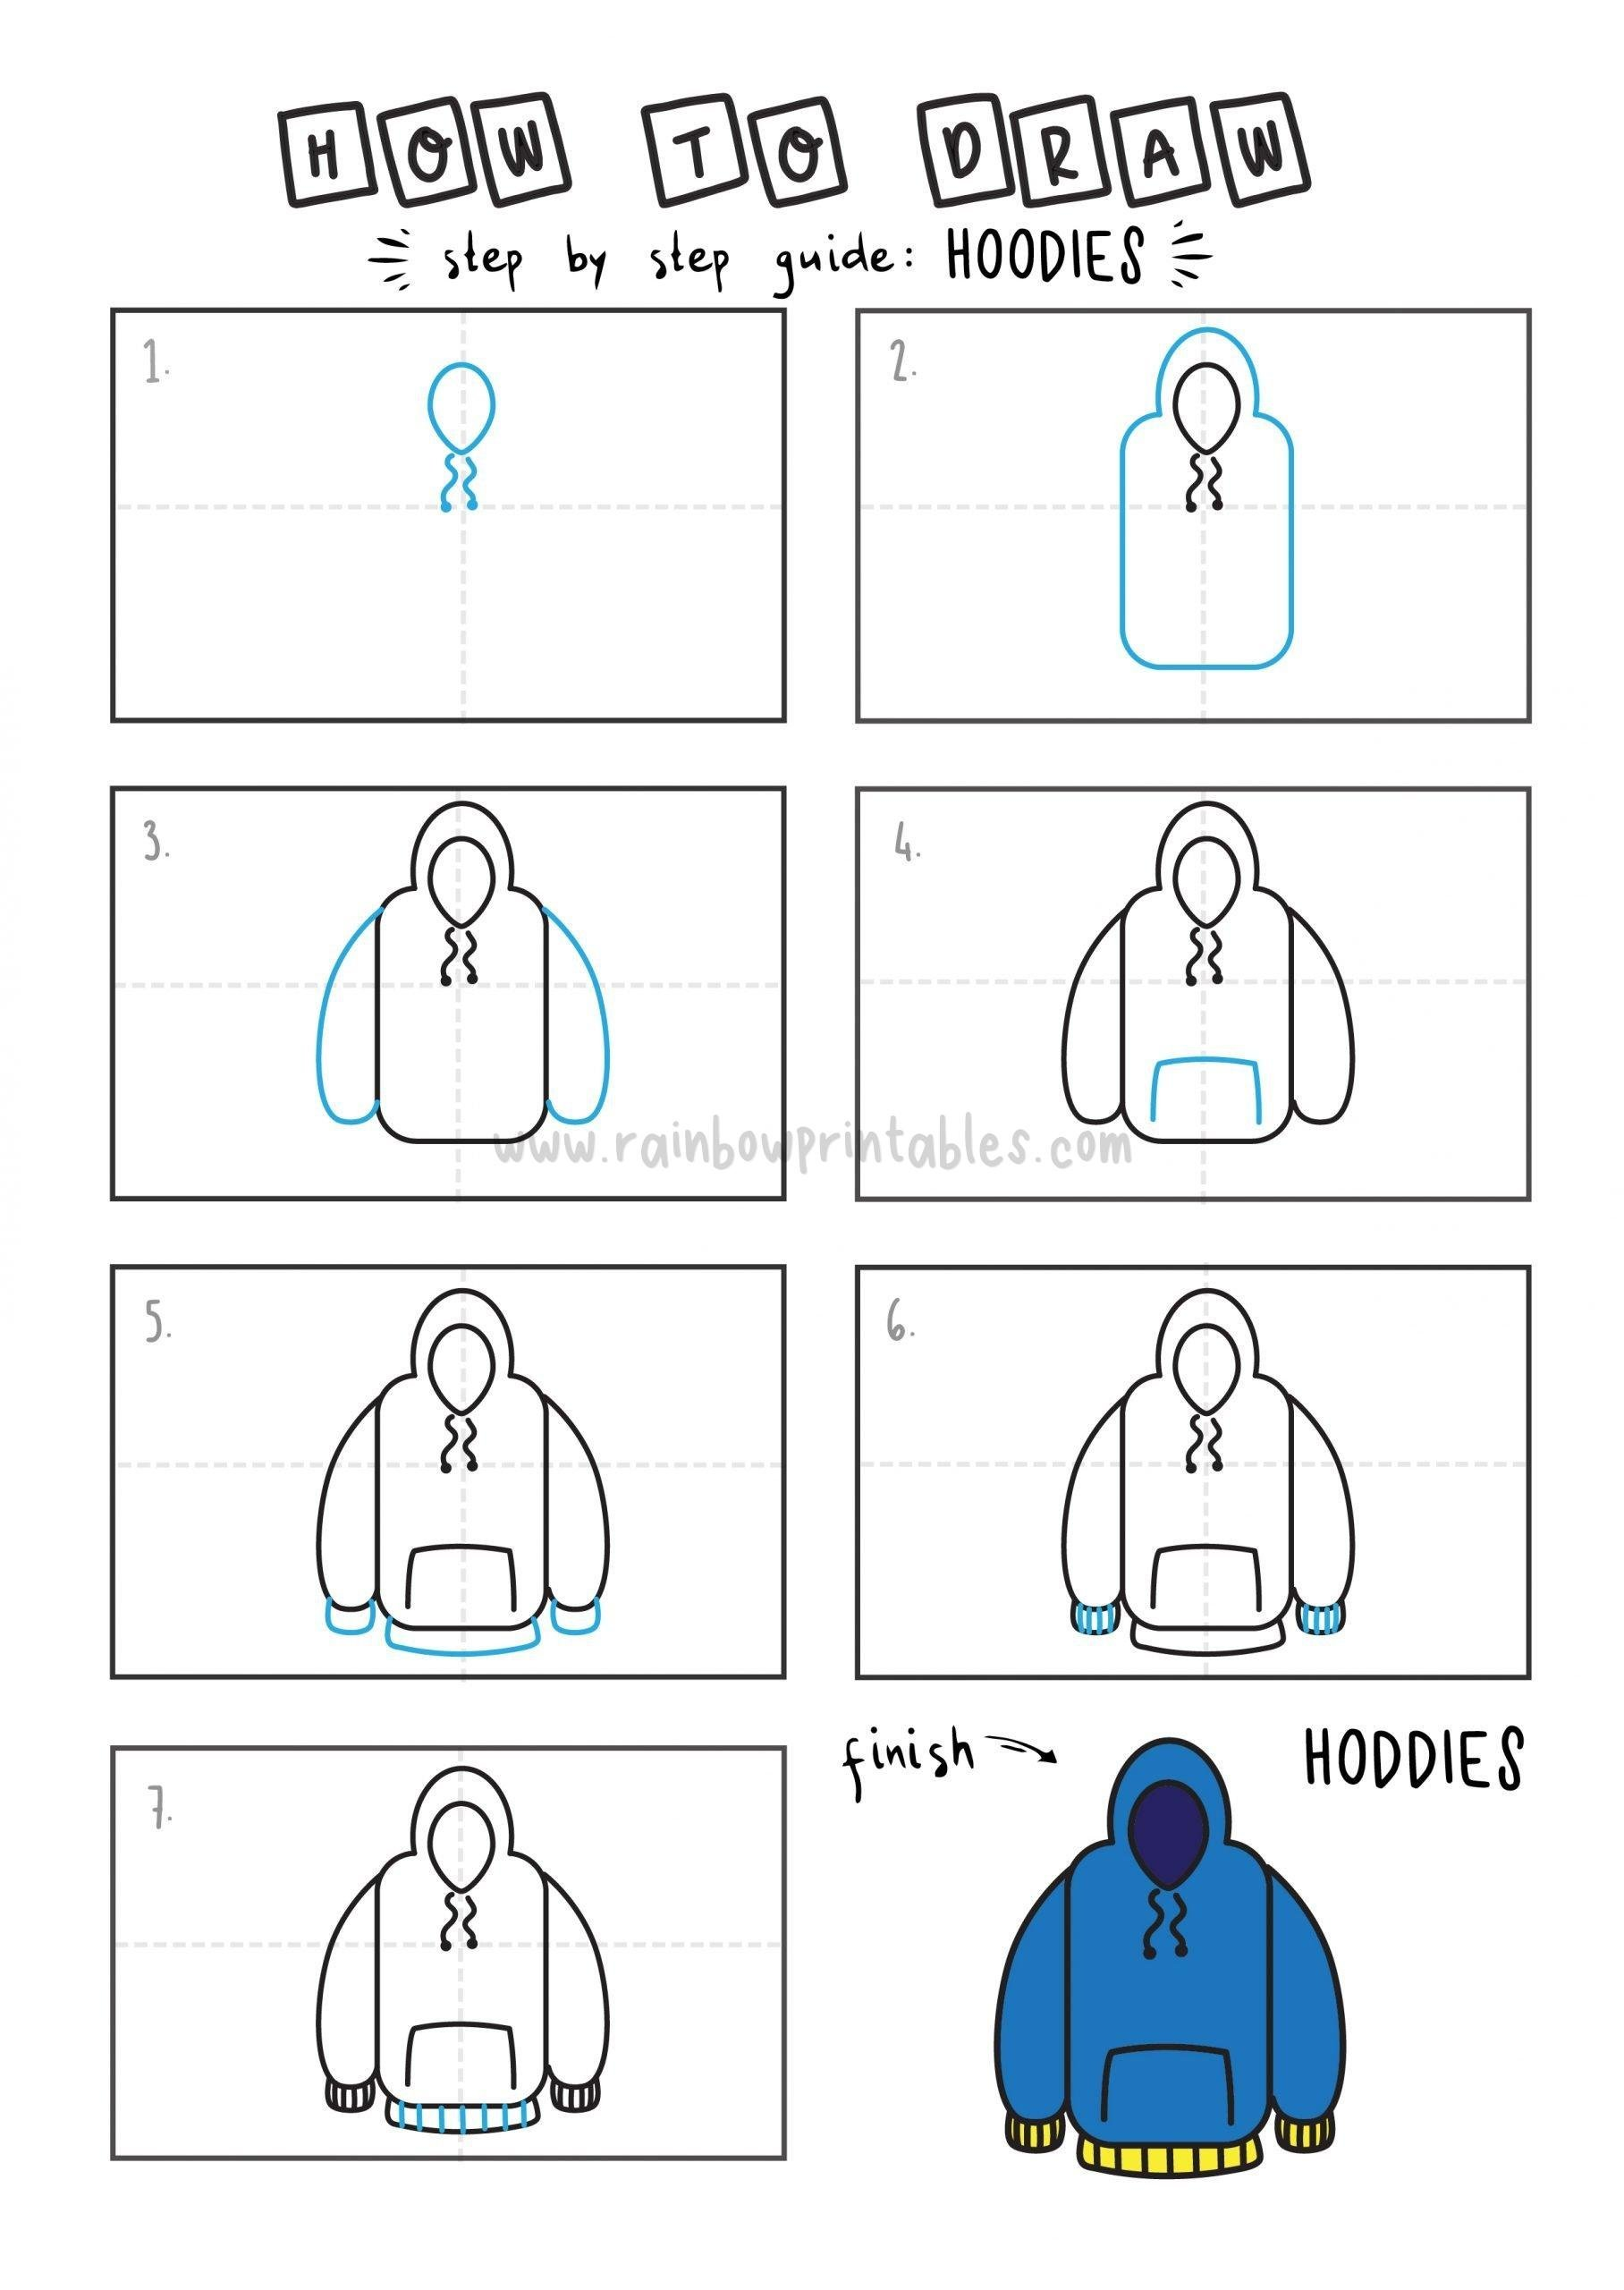 How To Draw Hoodie Clothing Step by Step Art Drawing Tutorial for Young Children